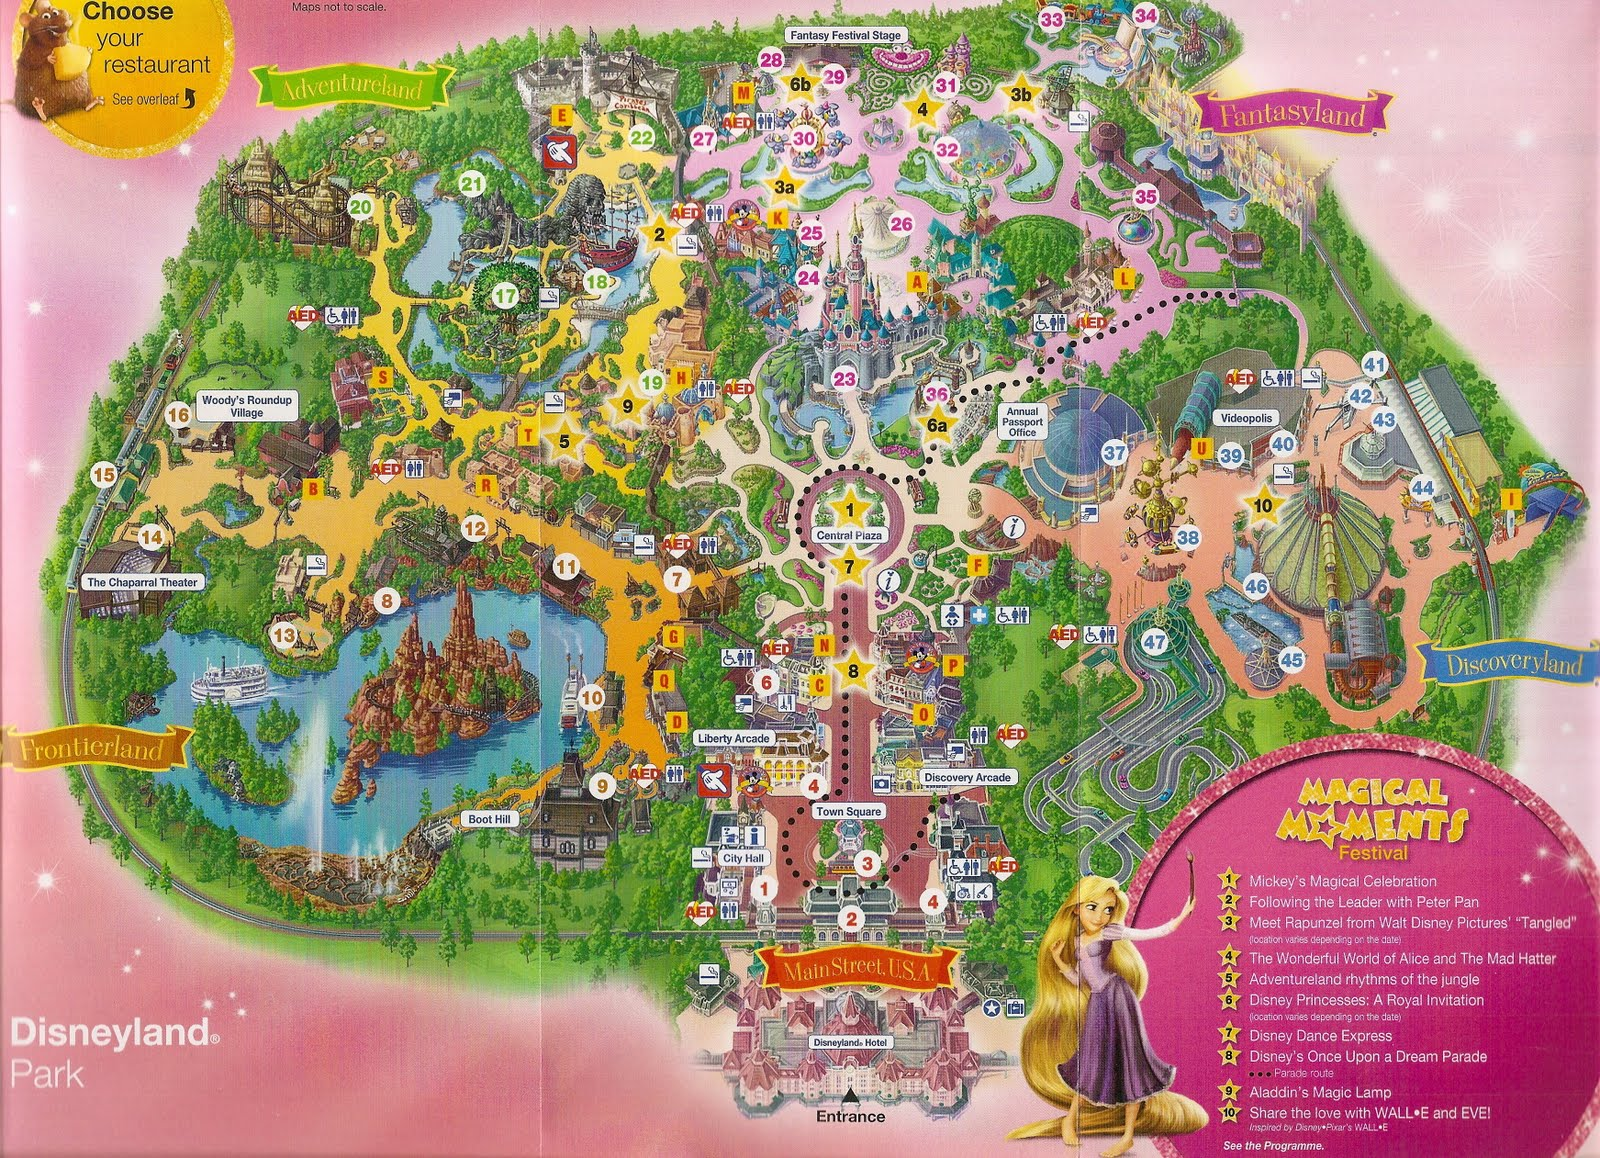 To disneyland resort paris with a look at the map of the disneyland